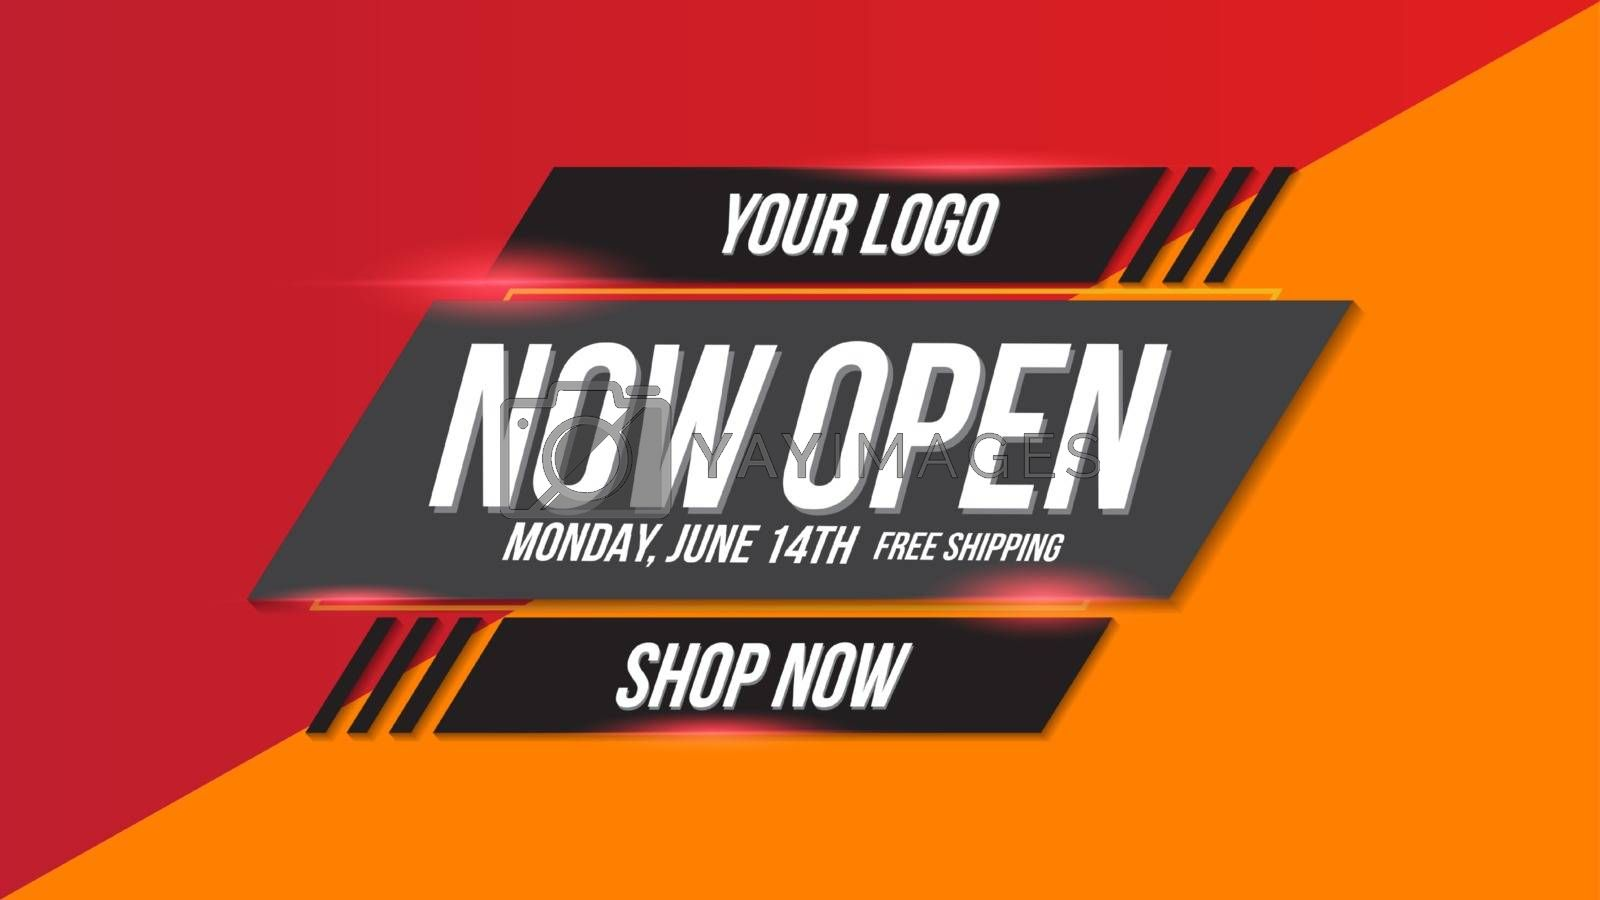 Now open shop or new store red and orange color sign on black background.Template design for opening event.Can be used for poster ,flyer , banner.